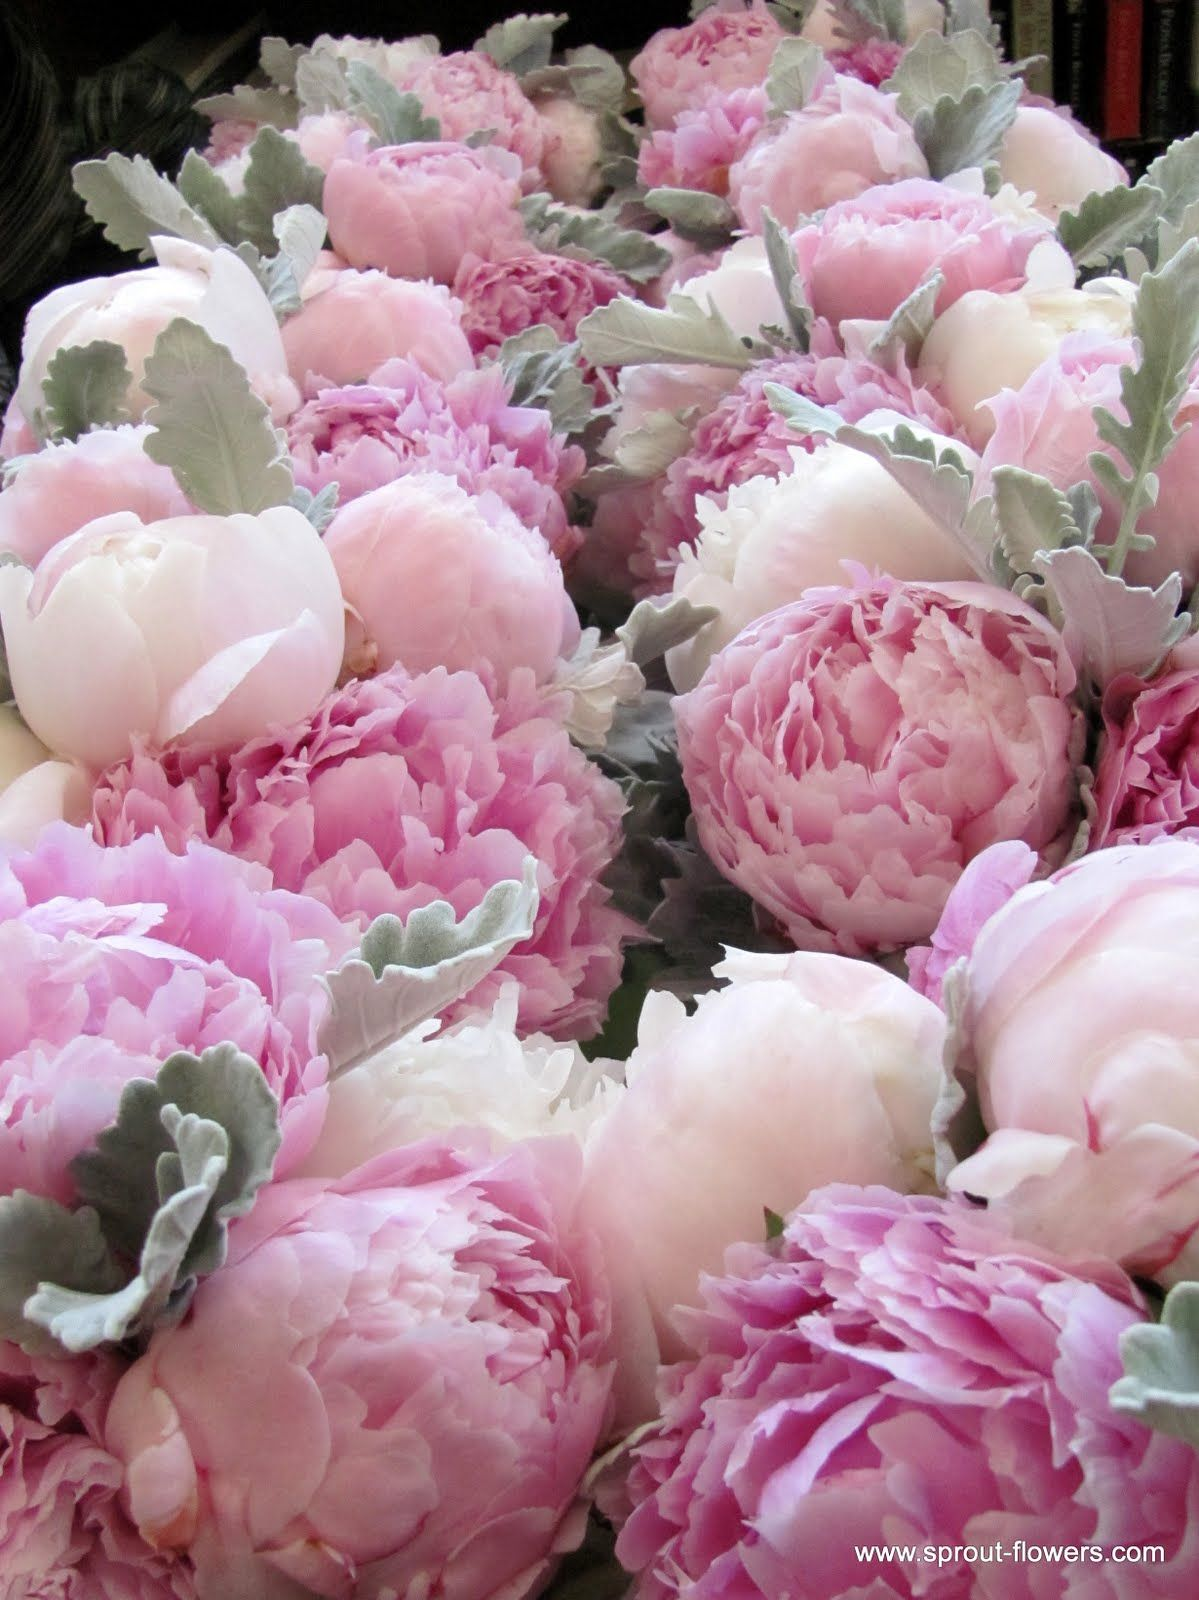 Gedroogde Bloemblaadjes I Love Peonies They Evoke Such An Extraordinary Sense Of Calm And